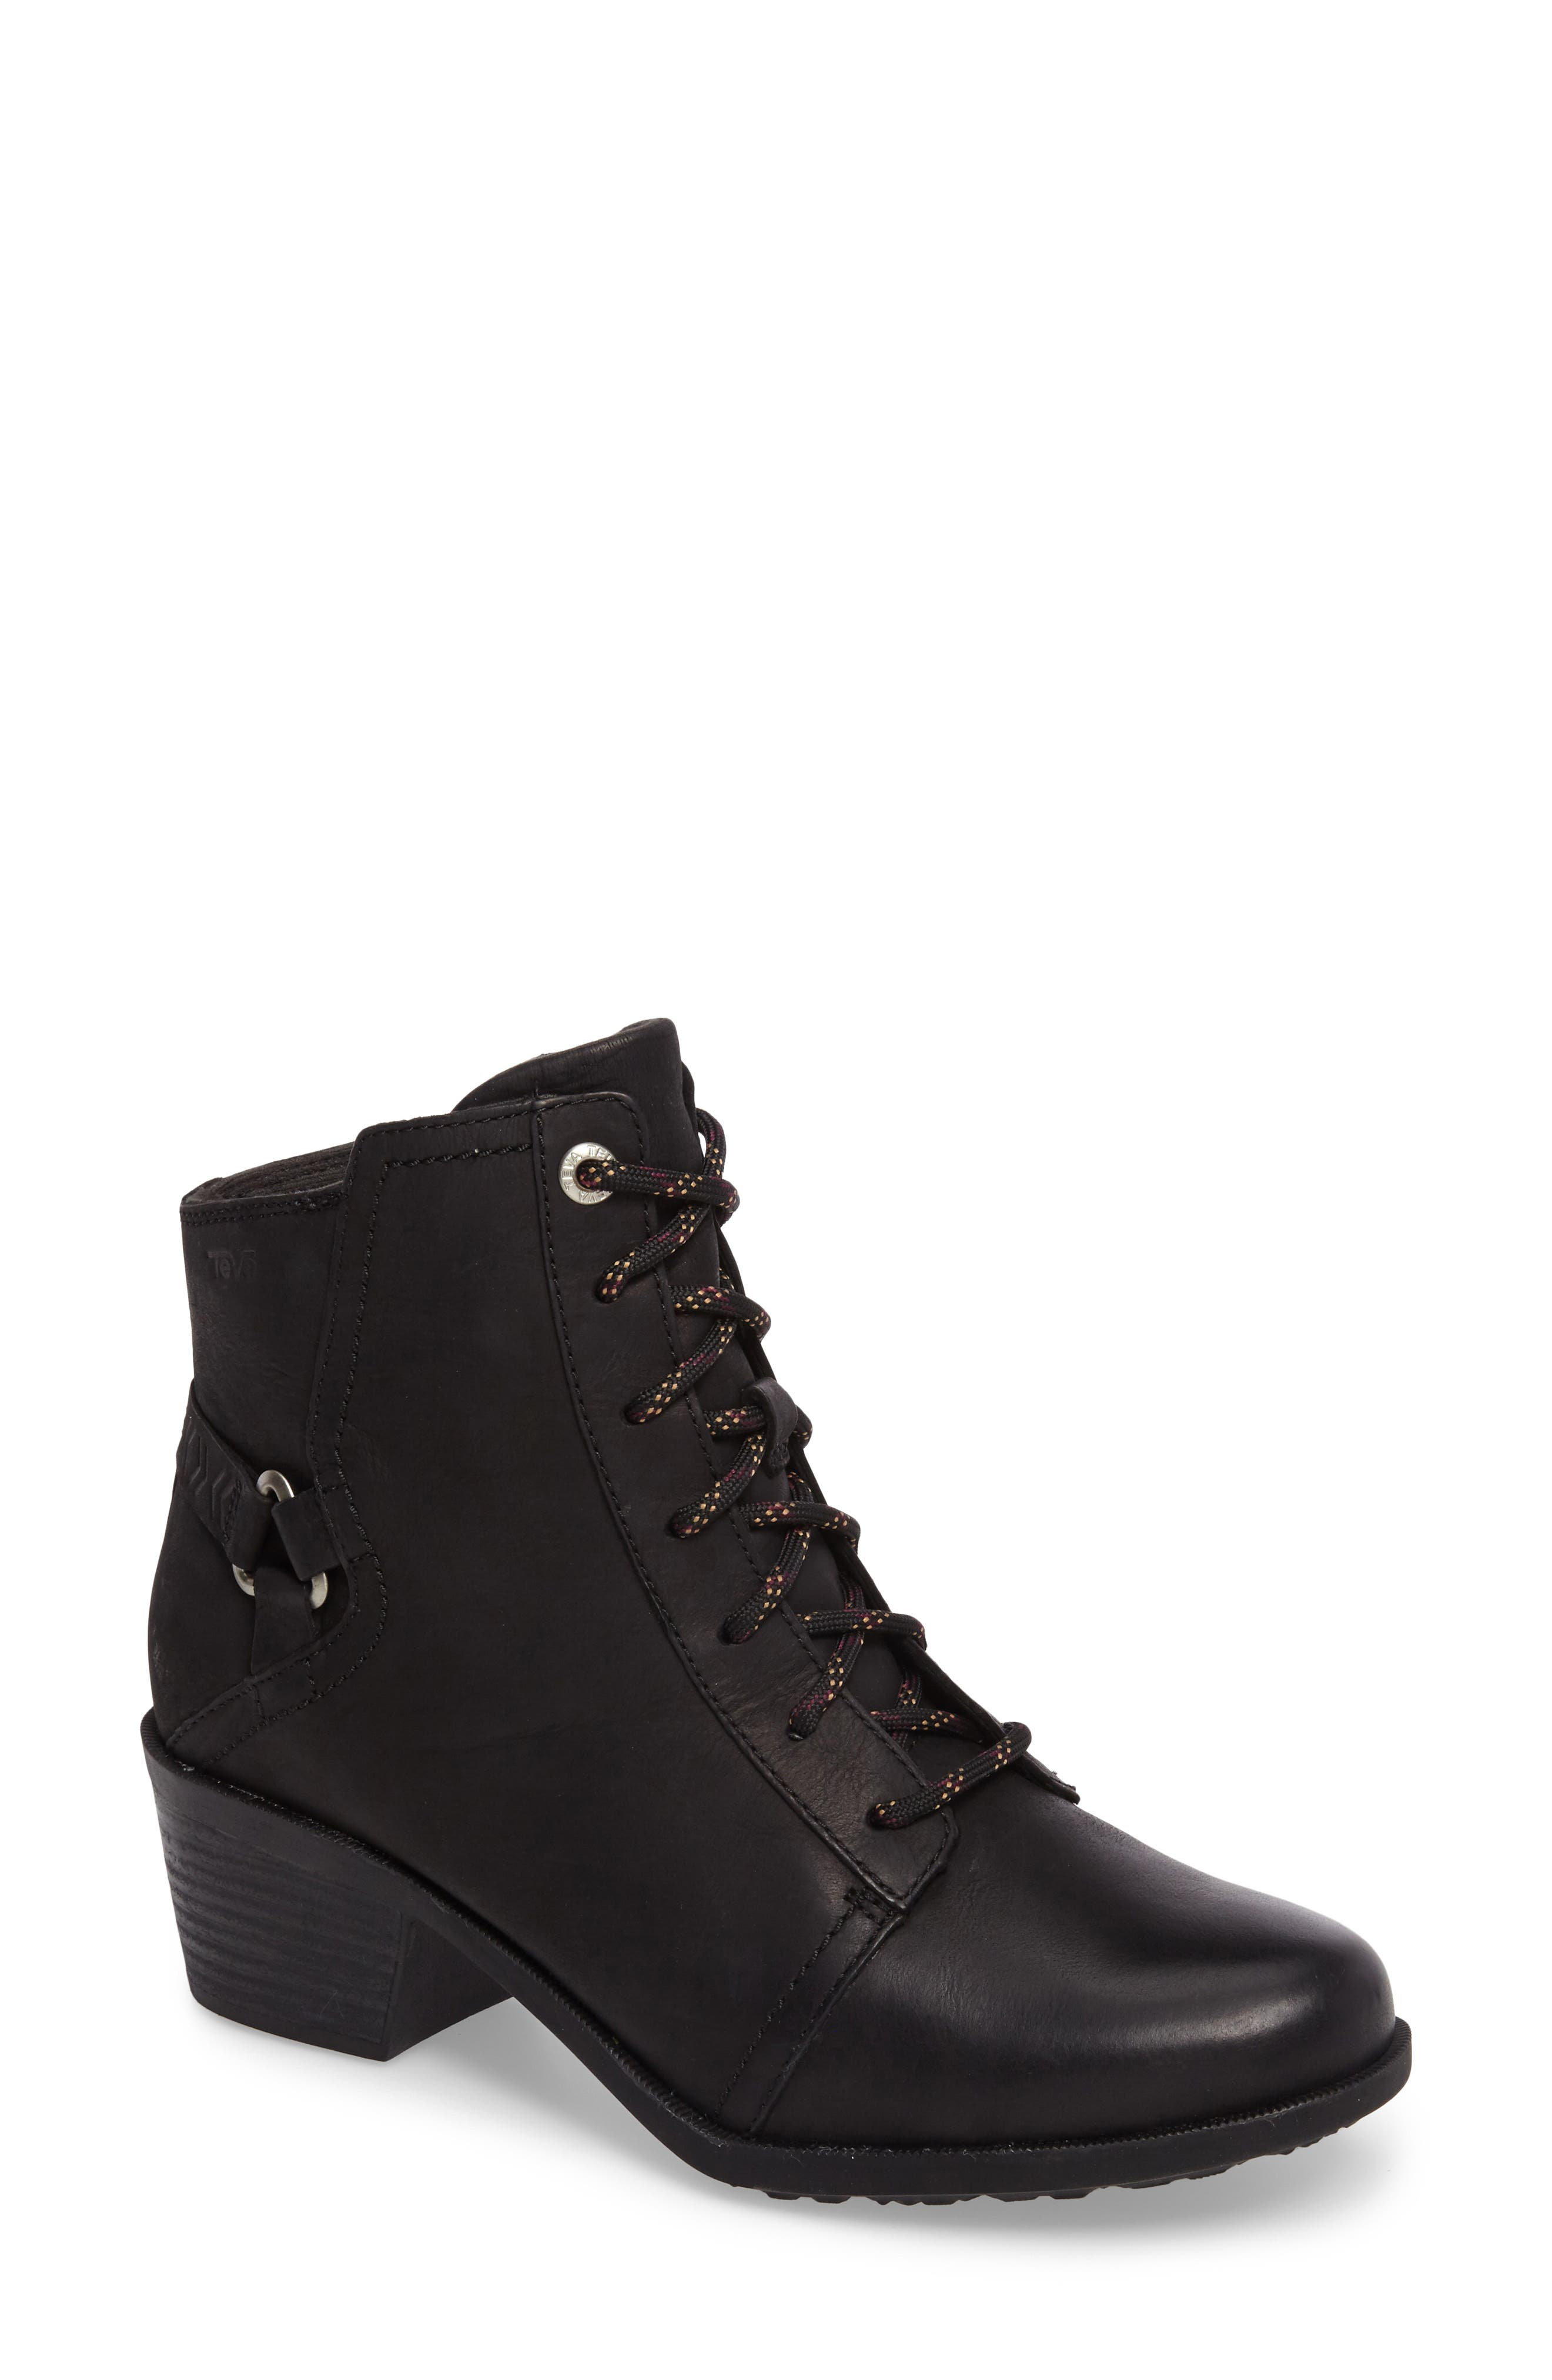 Alternate Image 1 Selected - Teva Foxy Lace-Up Waterproof Boot (Women)